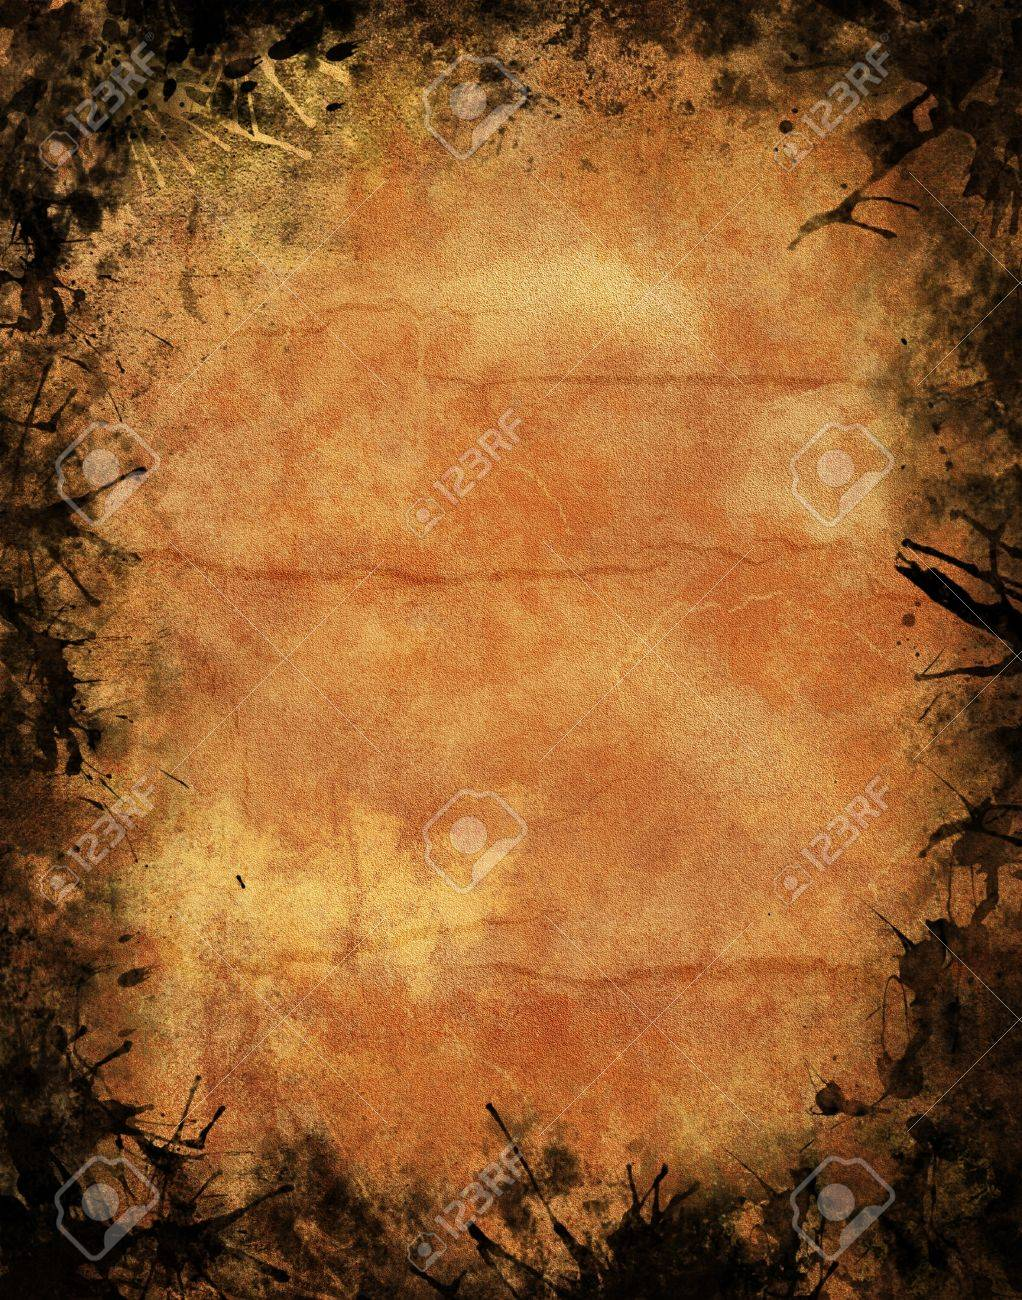 Grunge textured background for halloween poster Stock Photo - 15312693